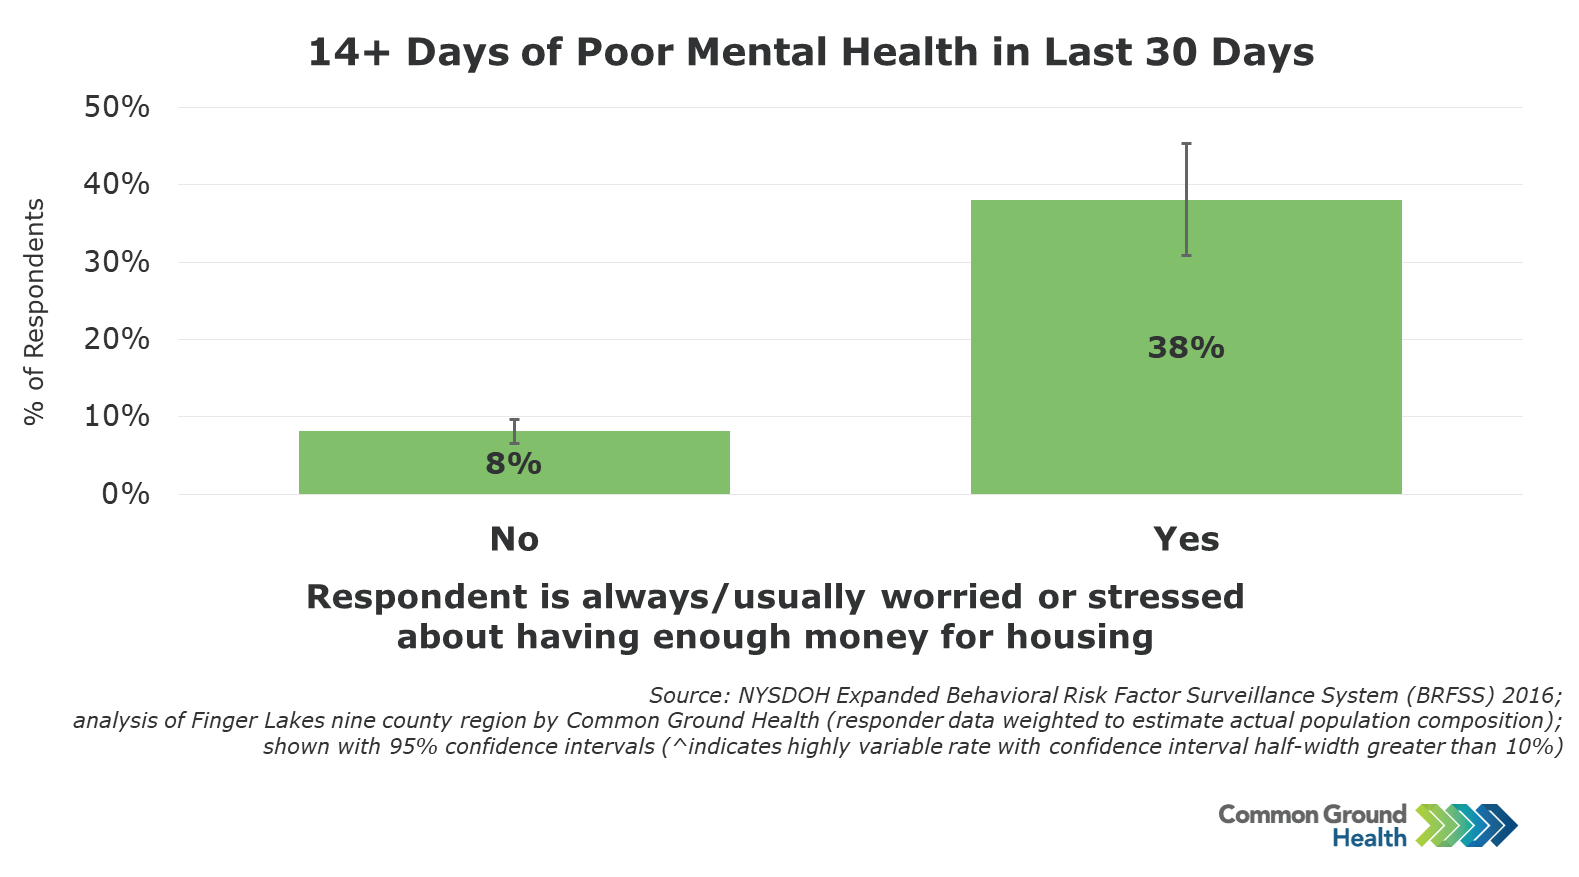 Relationship between mental health and financial stress